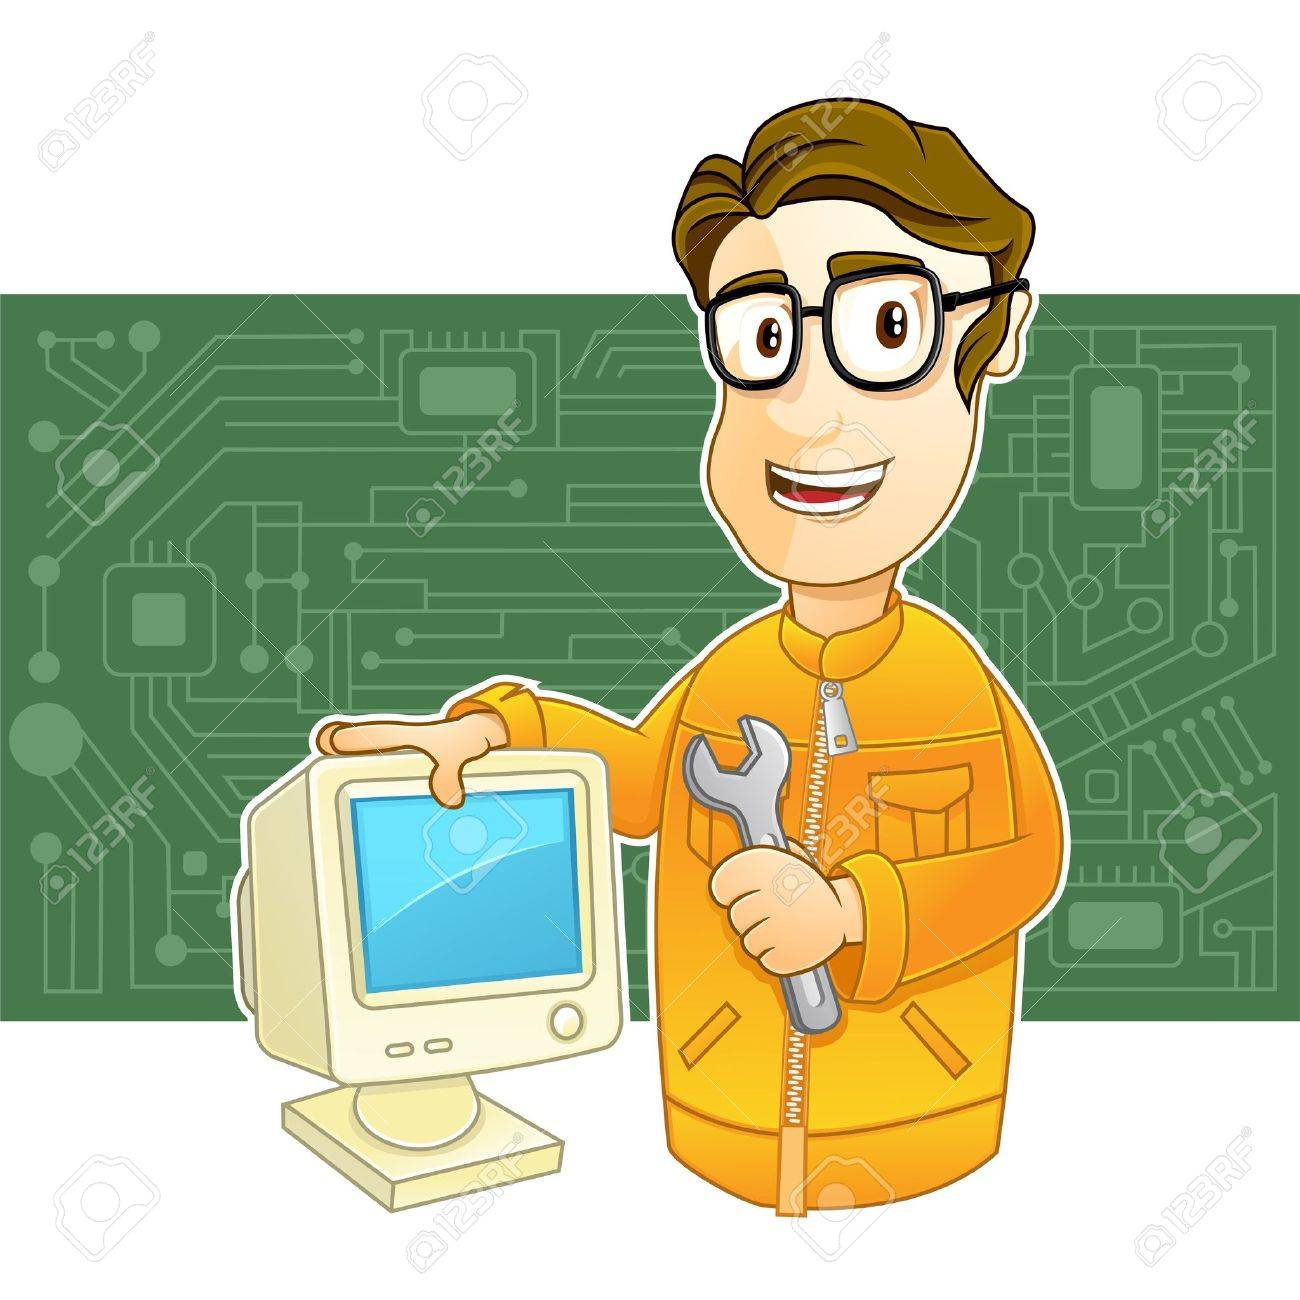 illustration of a Technician holding wrench and PC monitor Stock Vector - 18631002